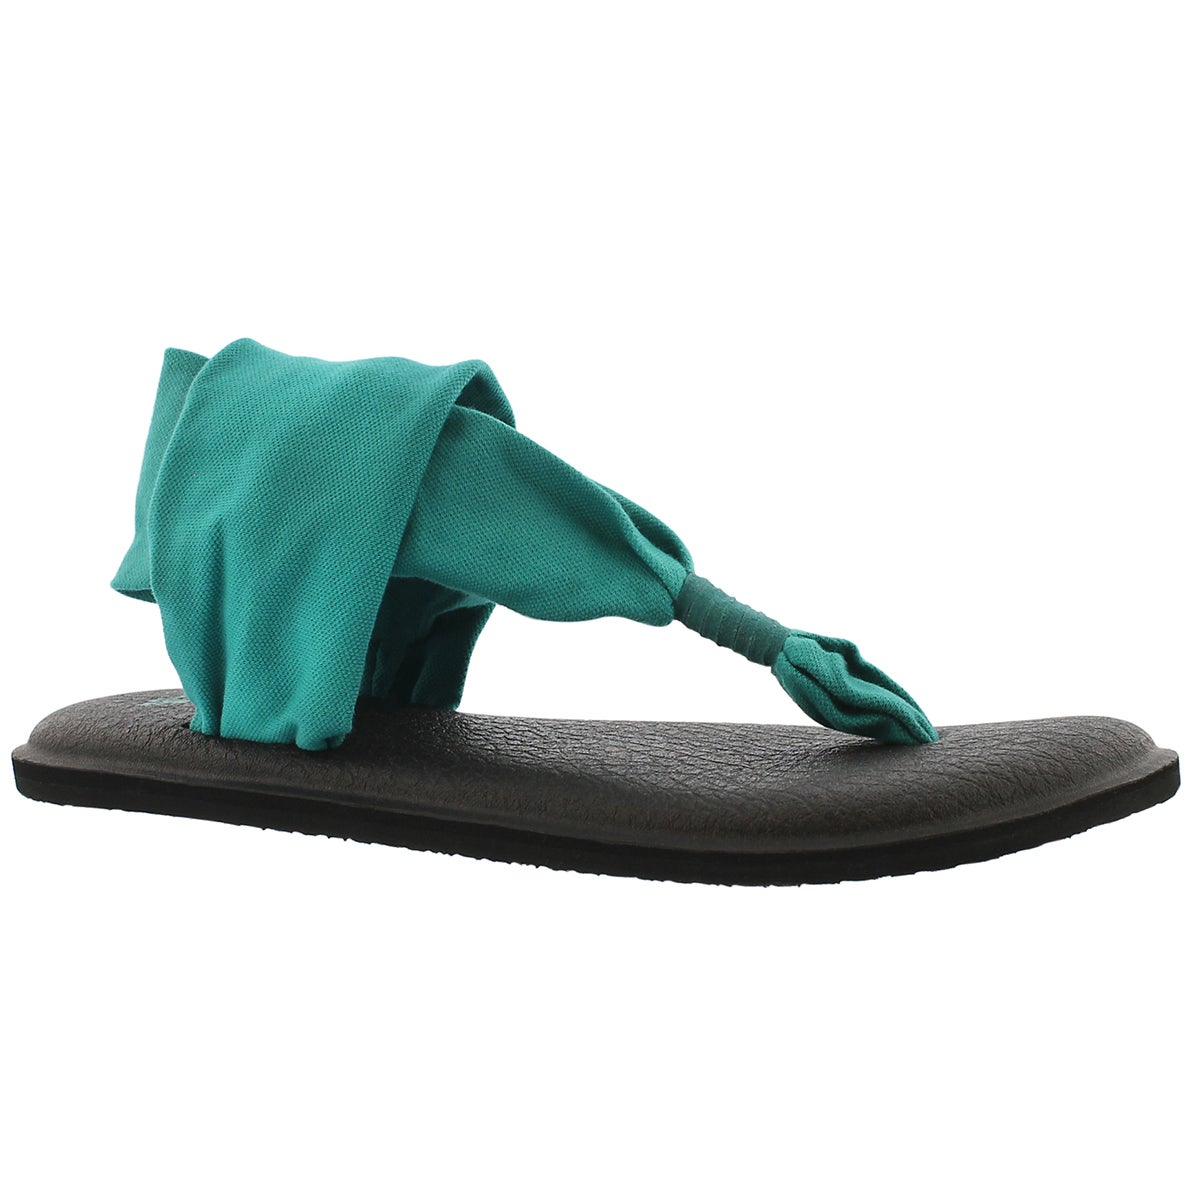 Women's YOGA SLING 2 teal thong sandals